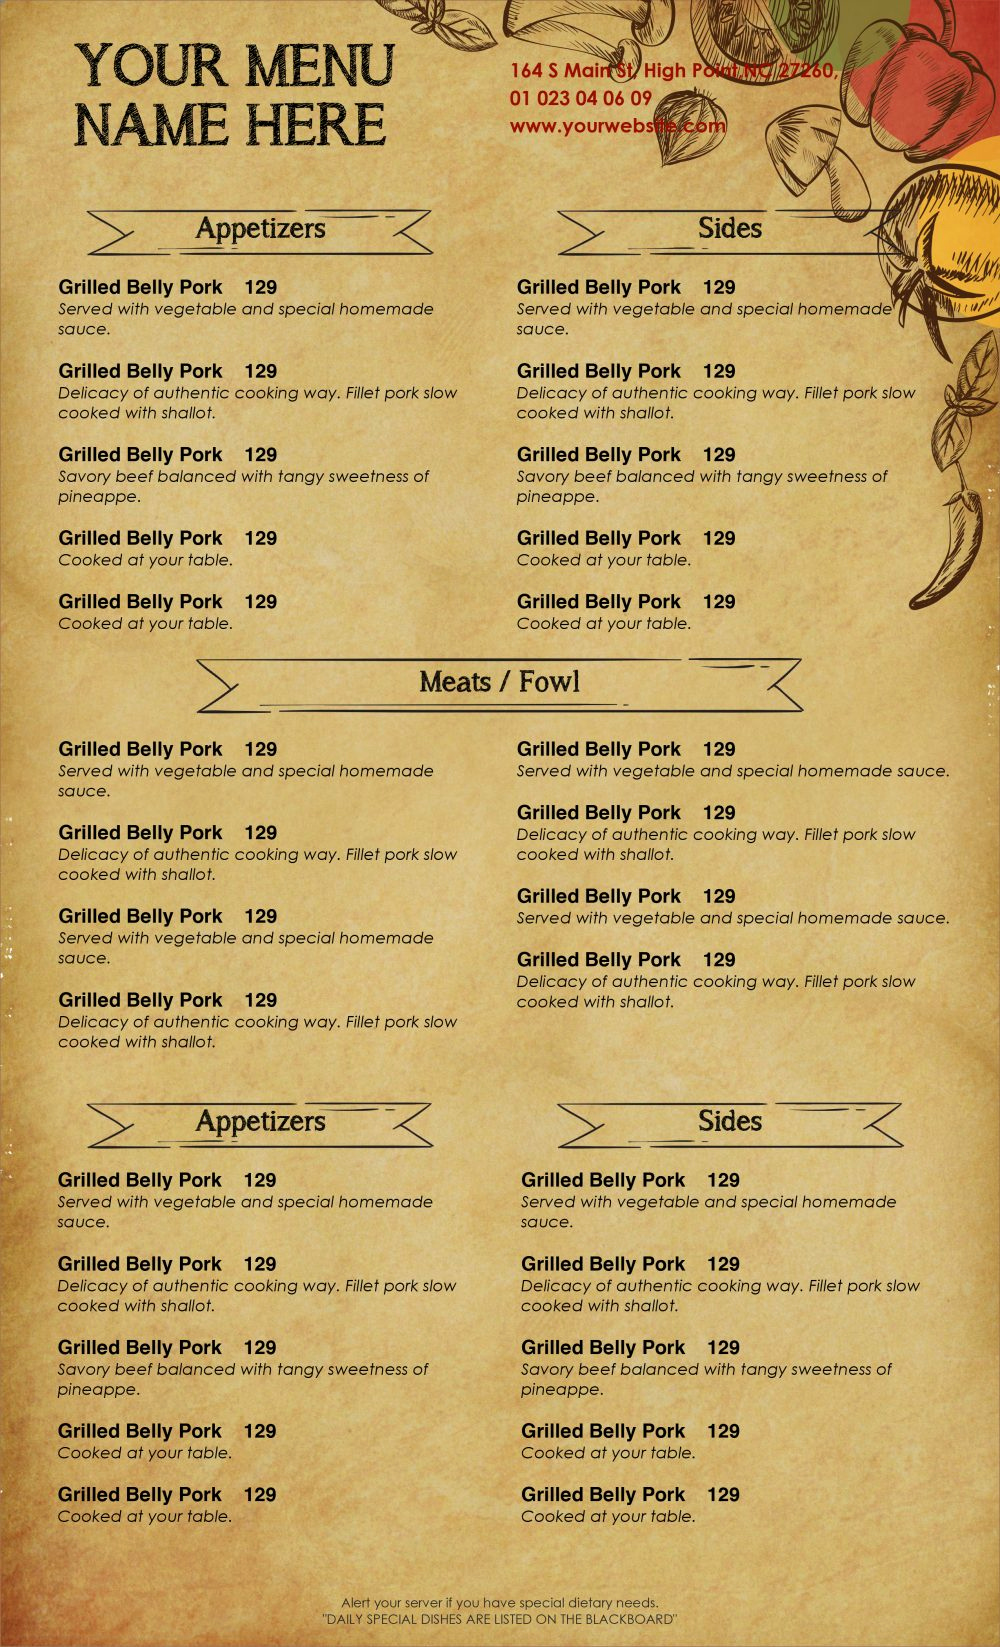 Catering Menu Template Word Lovely Design & Templates Menu Templates Wedding Menu Food